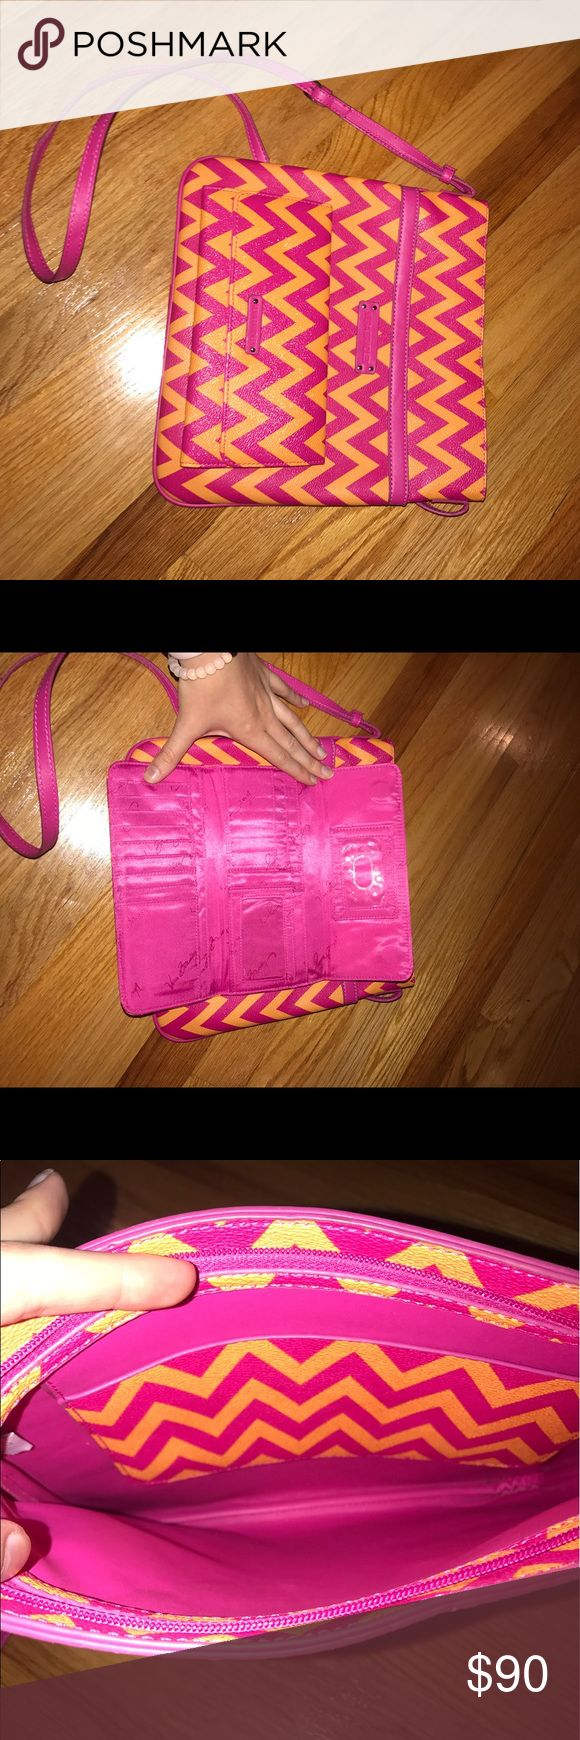 Vera Bradley Leather Chevron Purse and Wallet Pink and orange chevron Vera Bradley Purse! Minimal Use! In great condition! Vera Bradley Bags